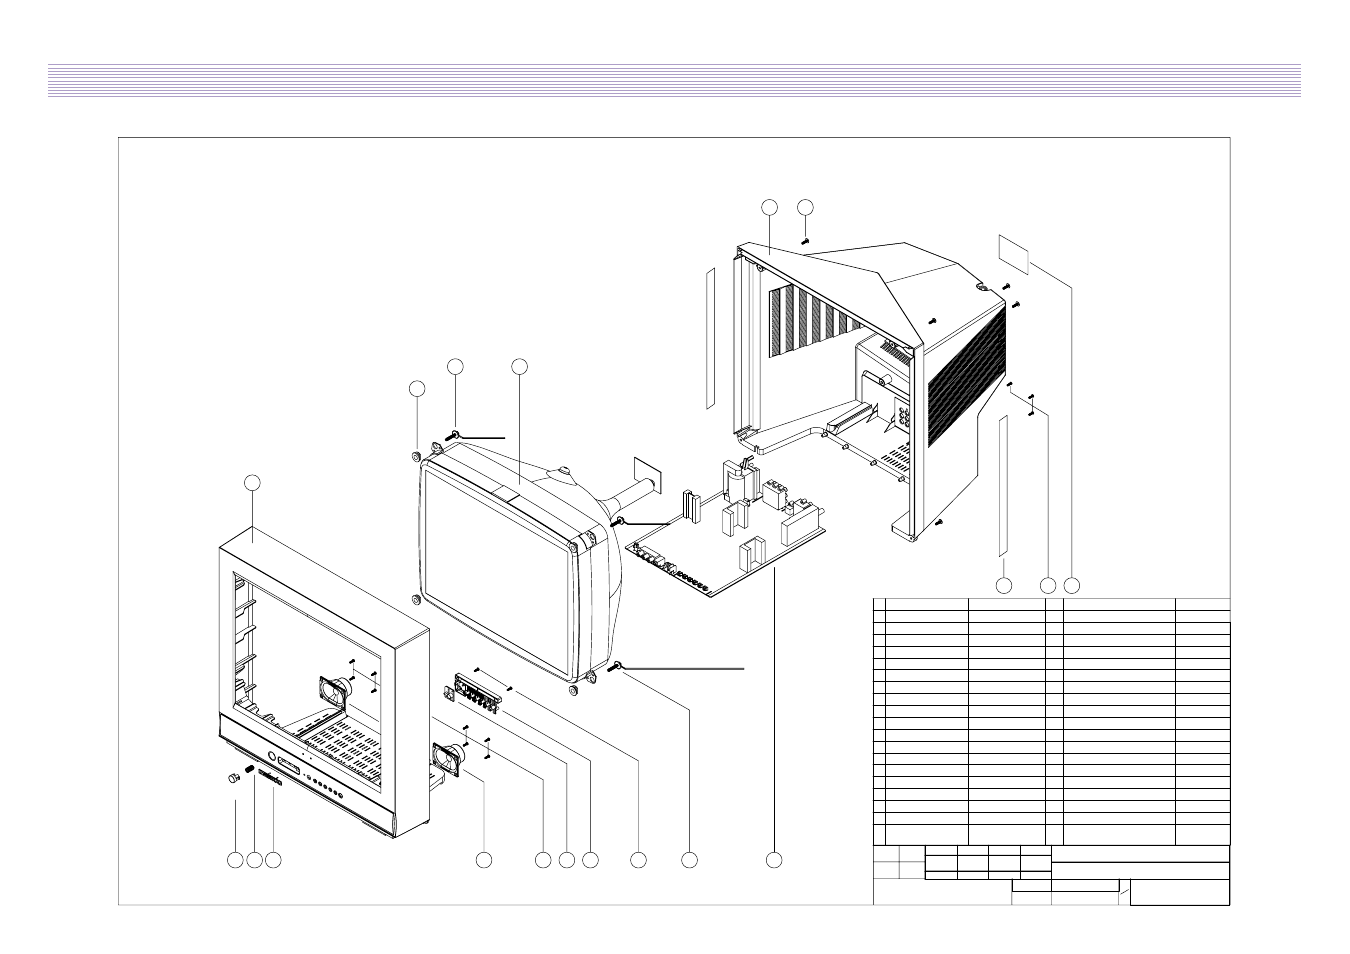 Exploded view, Daewoo electronics corp   Daewoo DTQ-2133SSN User Manual    Page 15